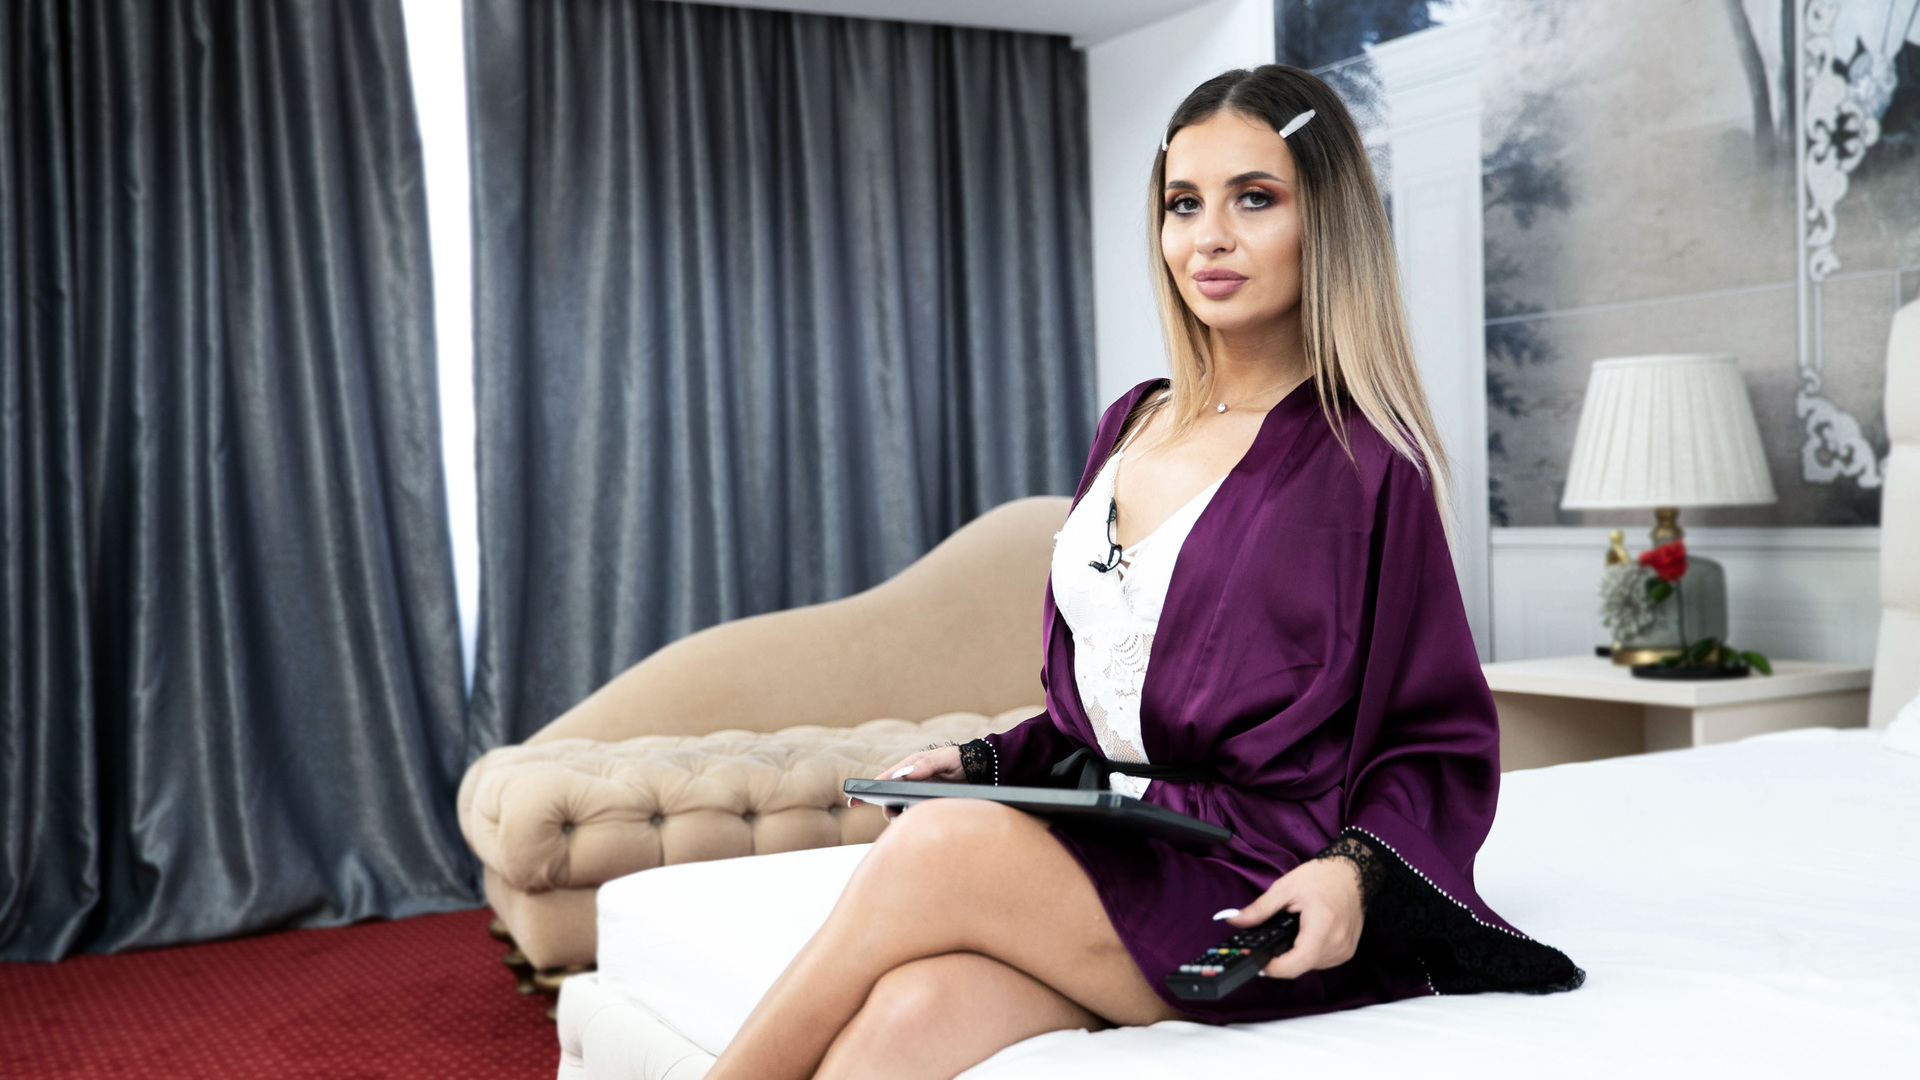 Adults Only: Cam Girl Millionaires | Sky.com